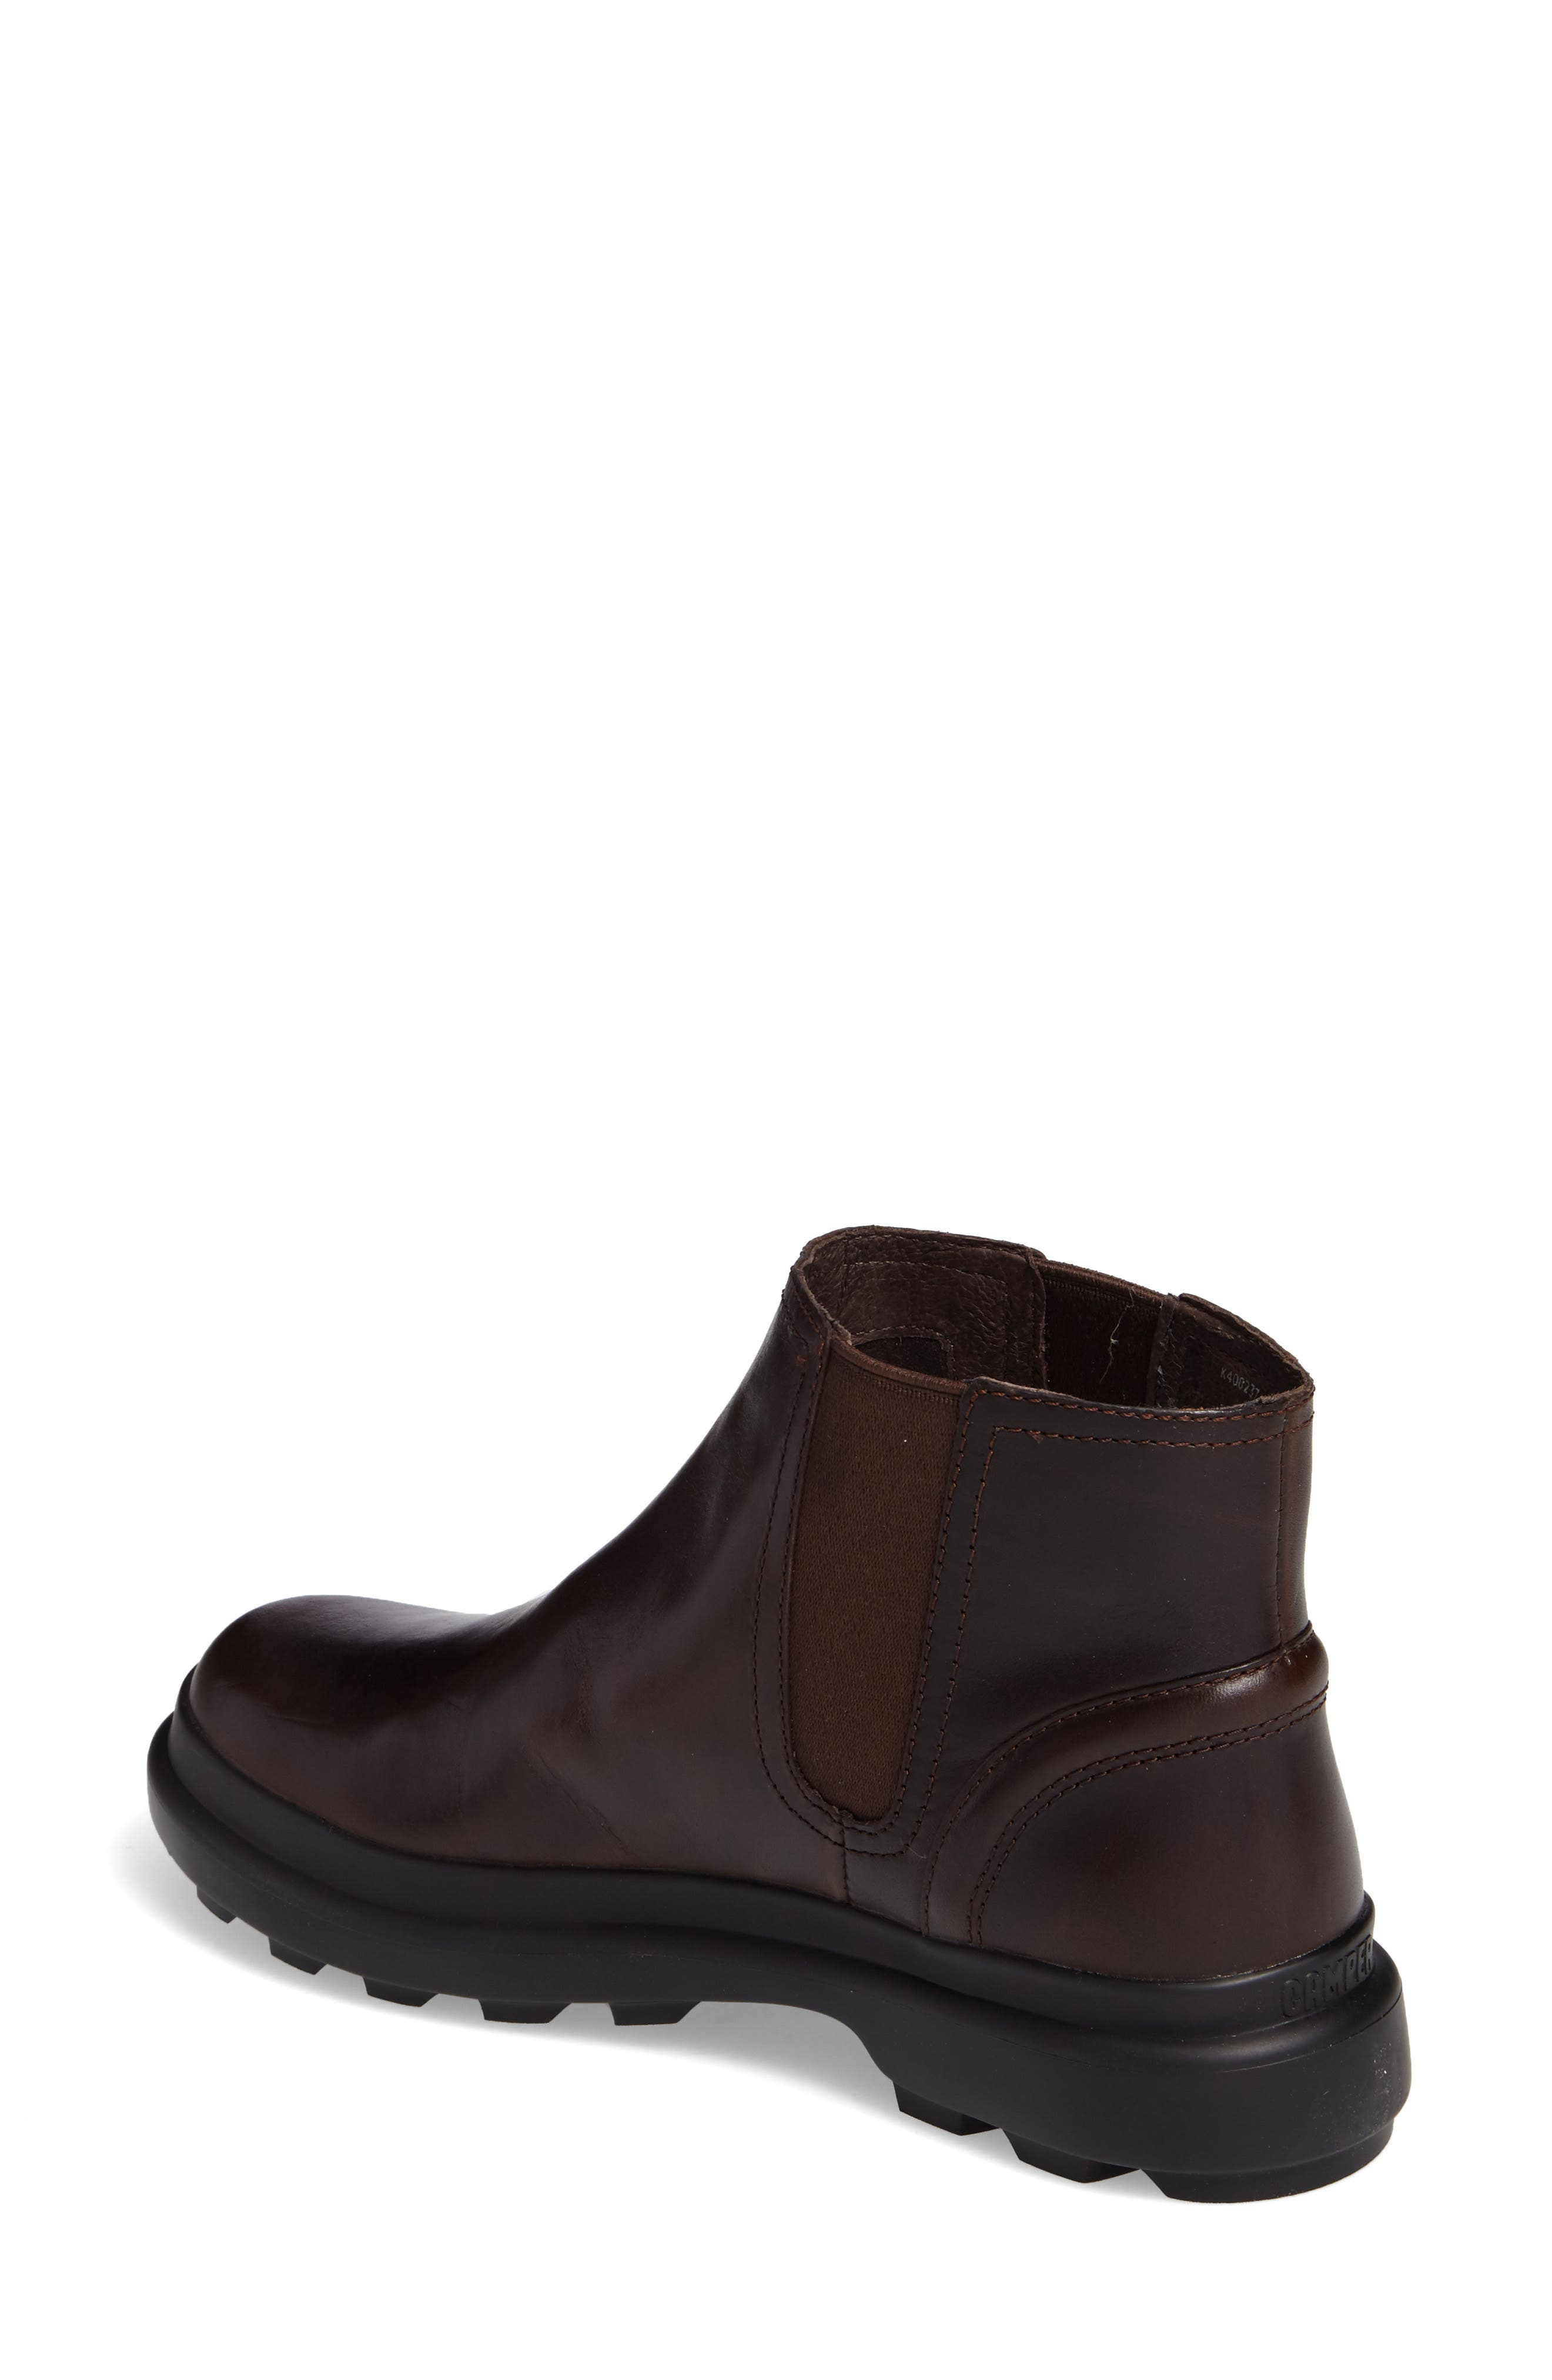 Turtle Lugged Chelsea Boot,                             Alternate thumbnail 2, color,                             Dark Brown Leather